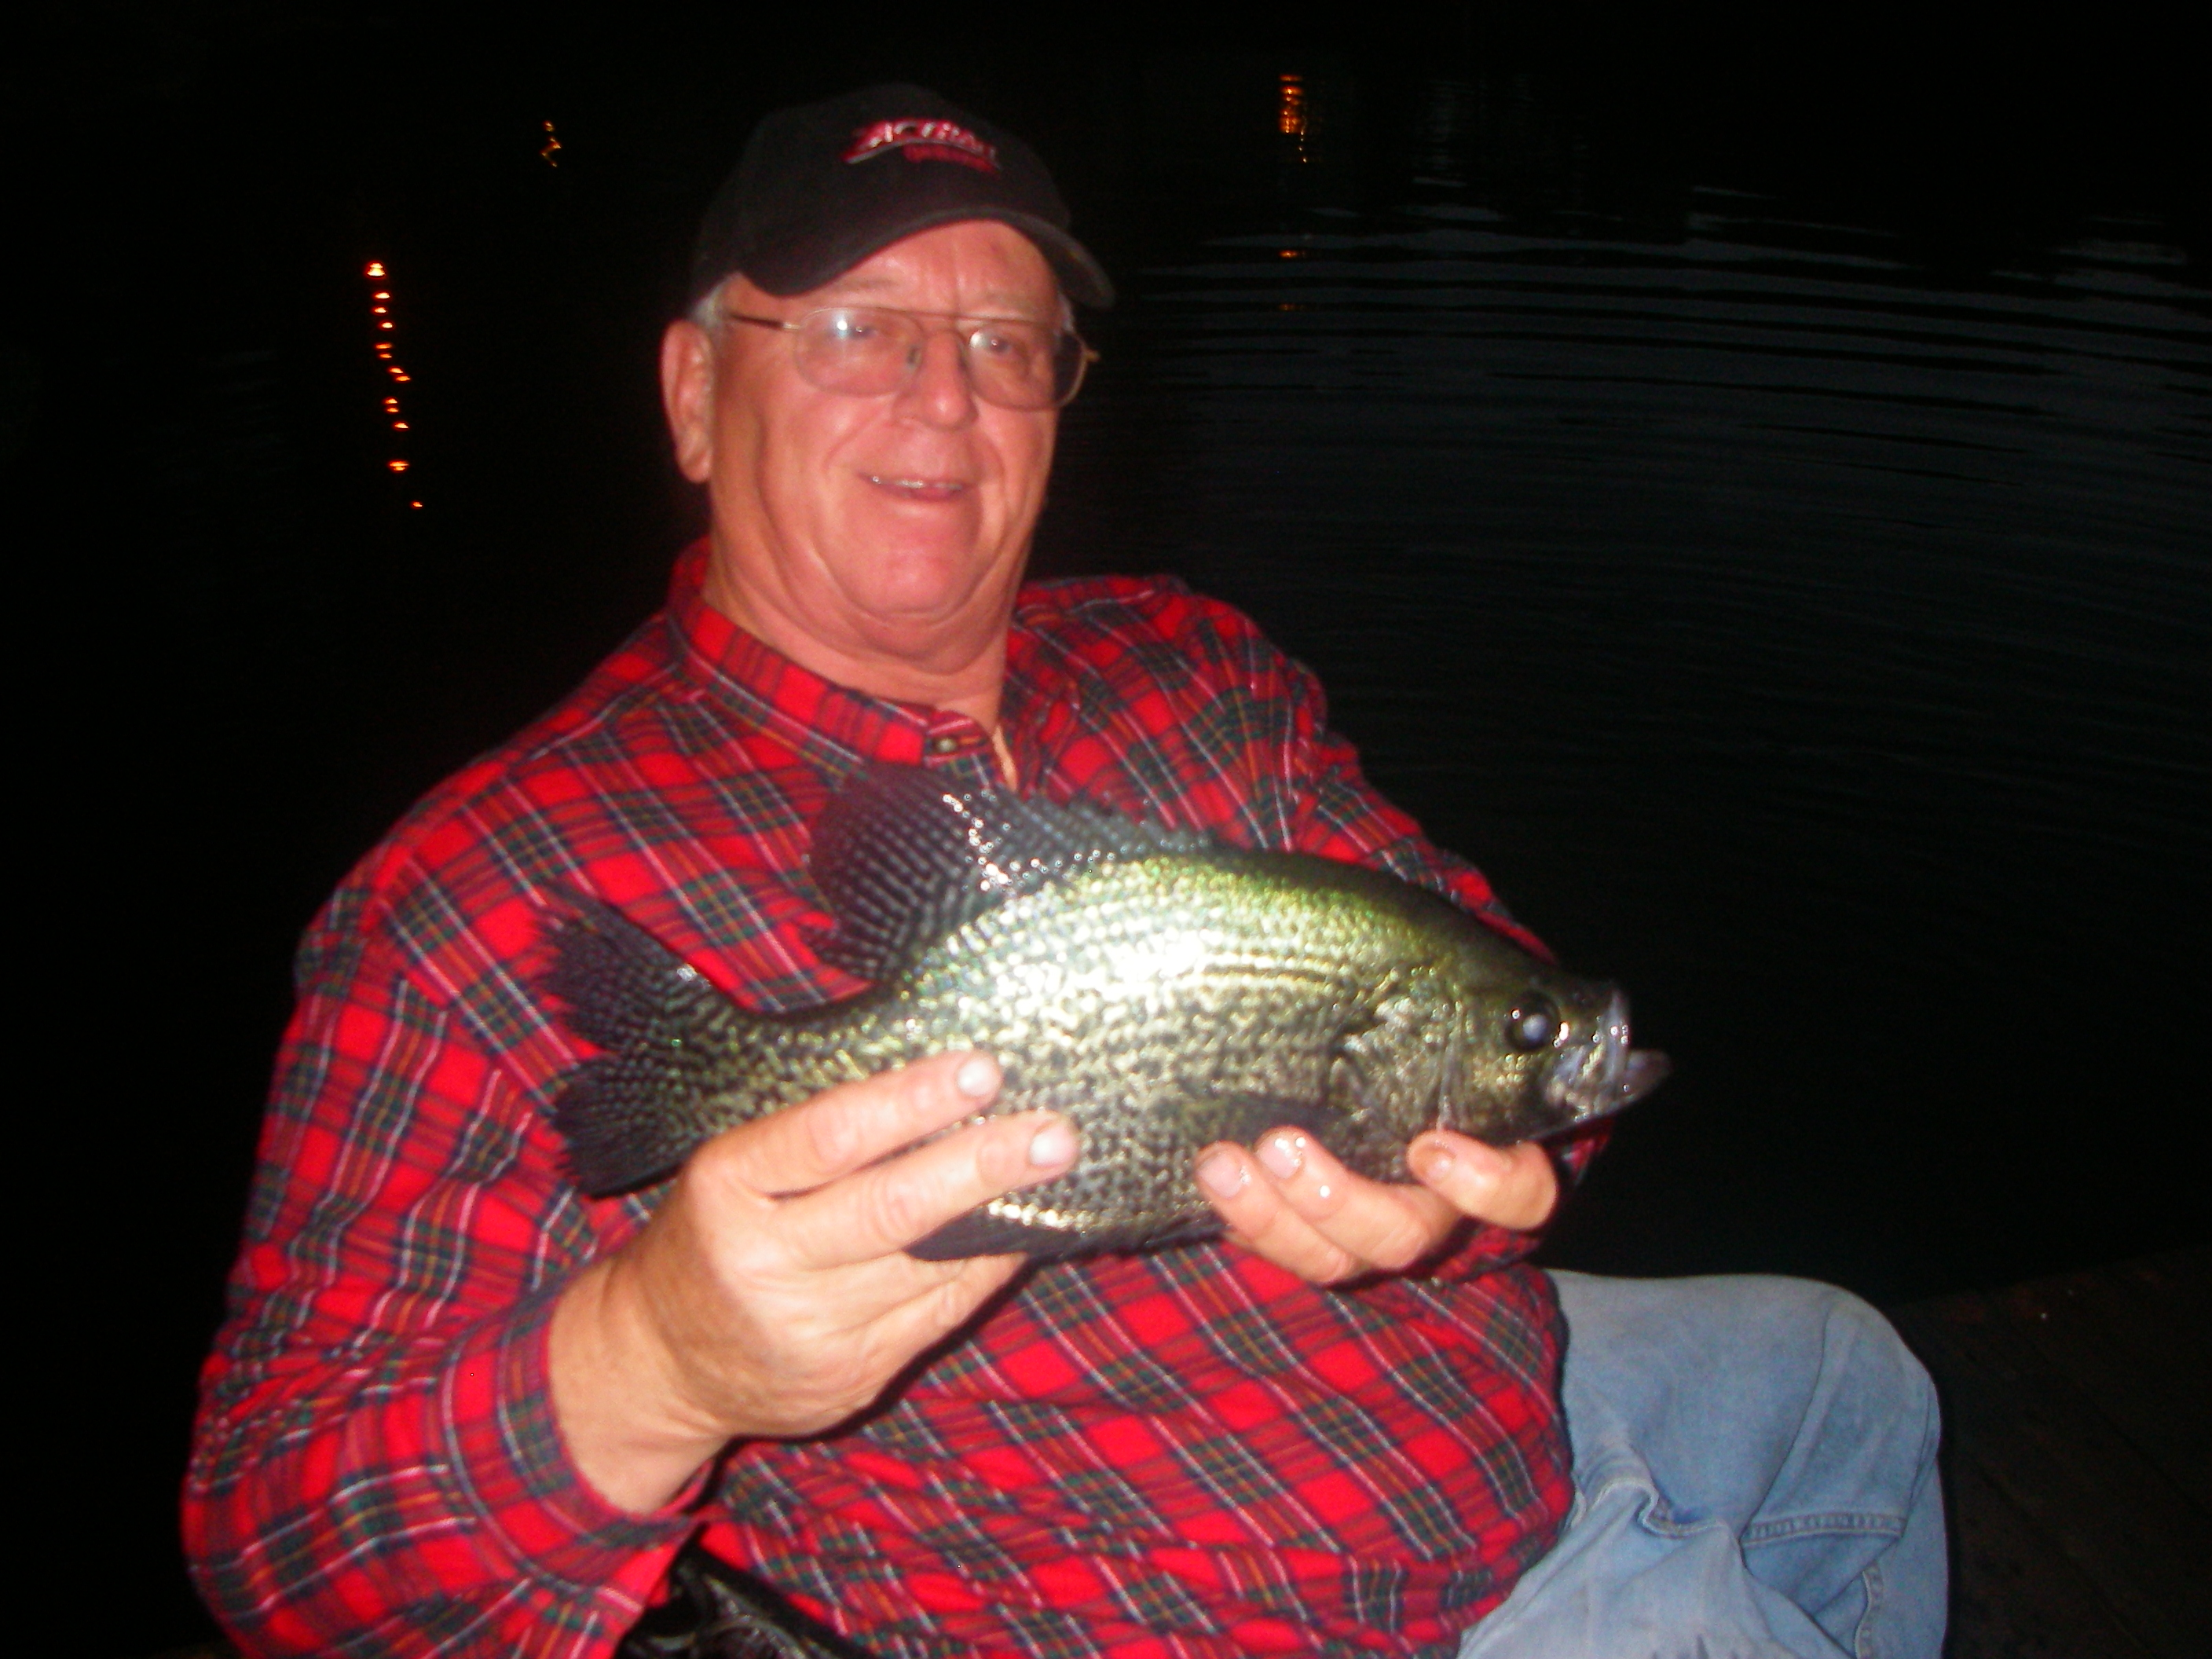 Crappie like bait at night